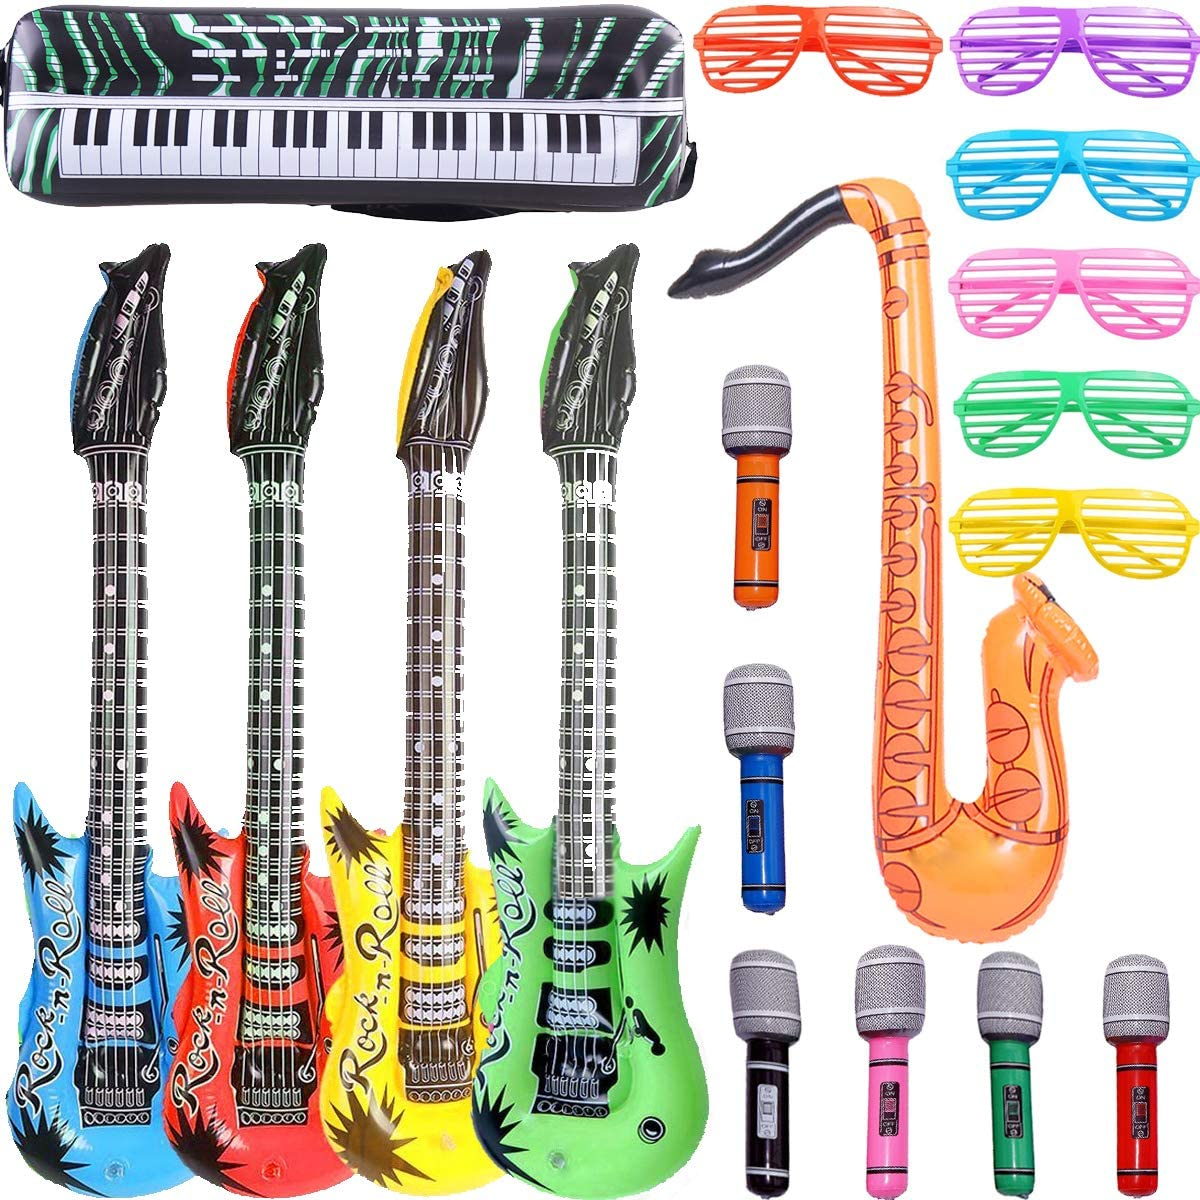 Inflatable Rock Star Toy Set - 18 Pack Inflatable Party Props - 4 Inflatable Guitar, 6 Microphones, 6 Shutter Shading Glasses, 1 Saxophone and 1 Inflatable Keyboard Piano Inflatable Rock toys: Toys & Games